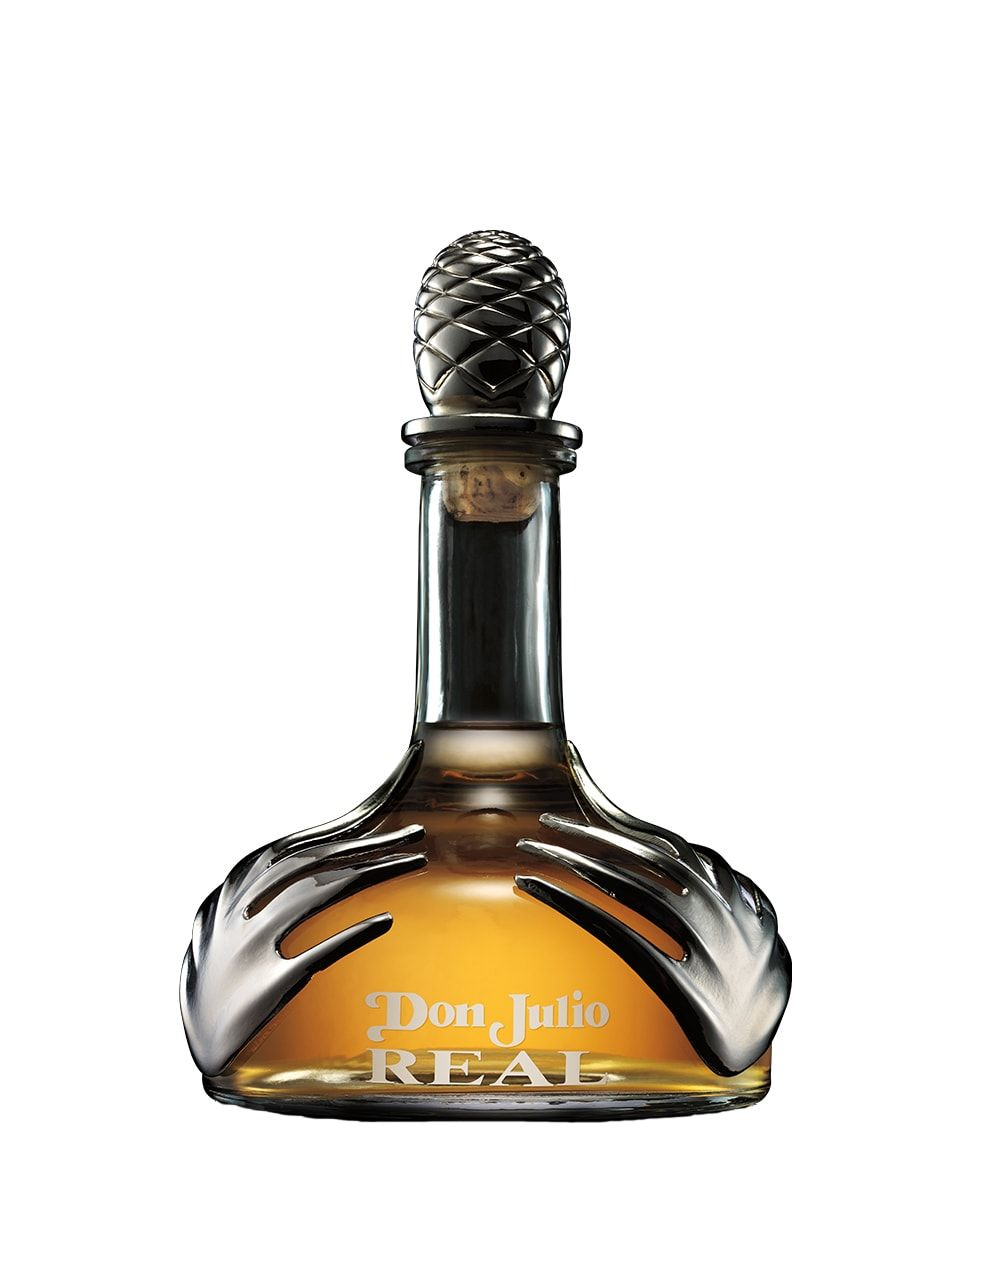 Don Julio Real Buy Online Or Send As A Gift Reservebar